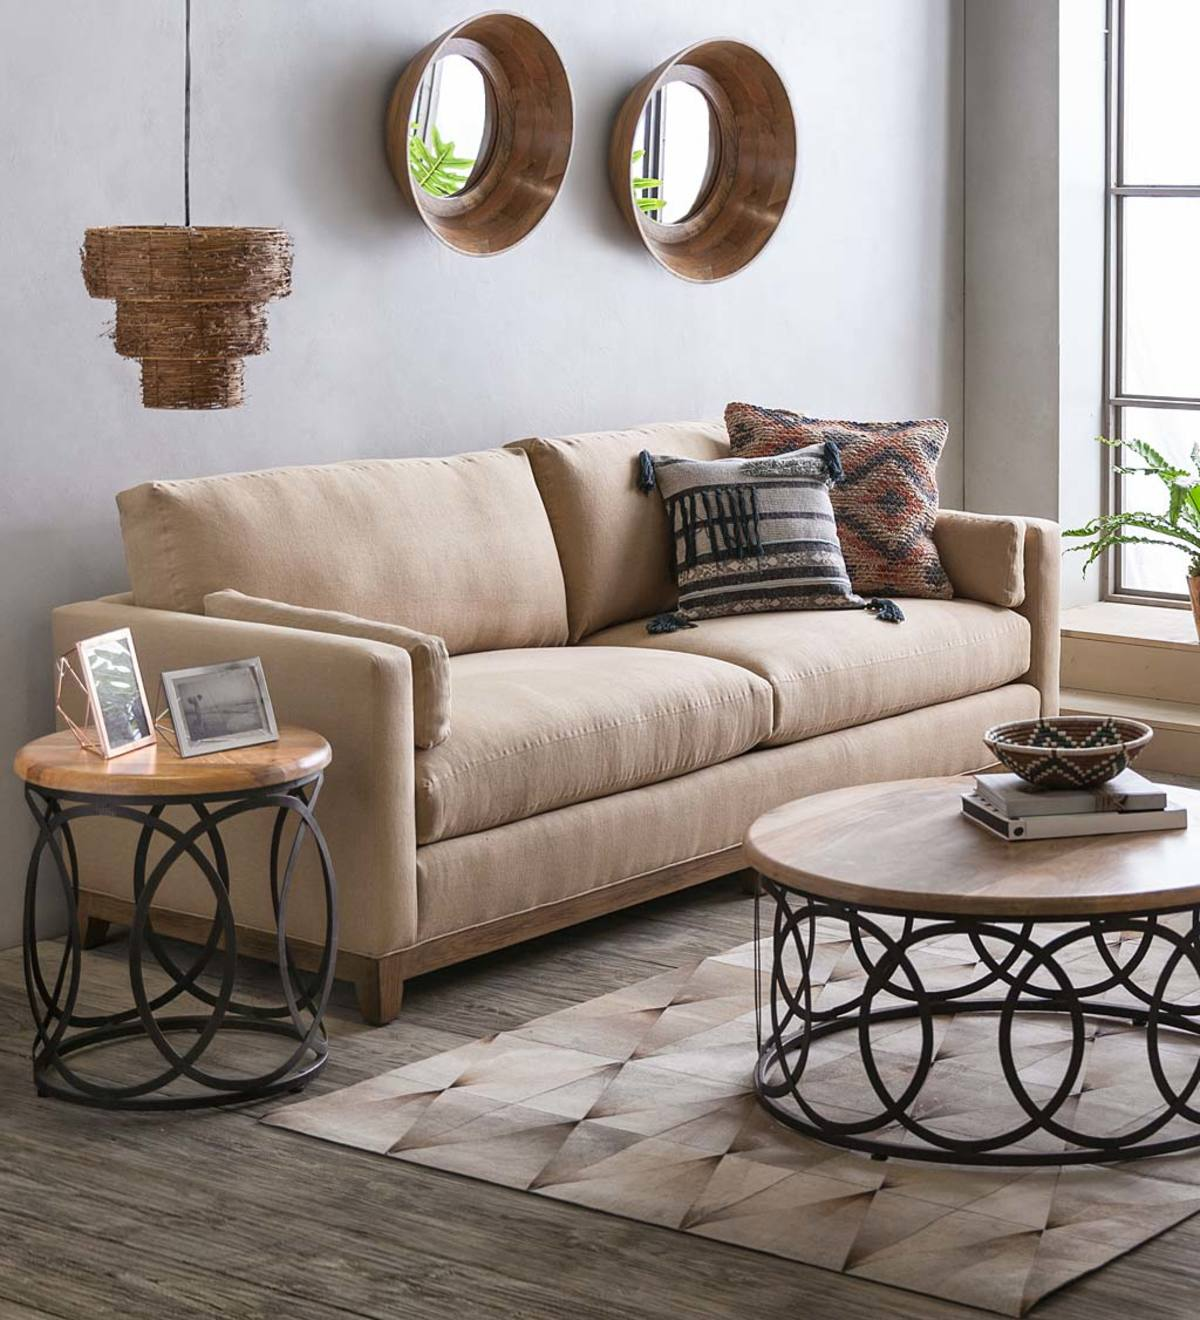 Upholstered Studio Sofa and Chair Collection